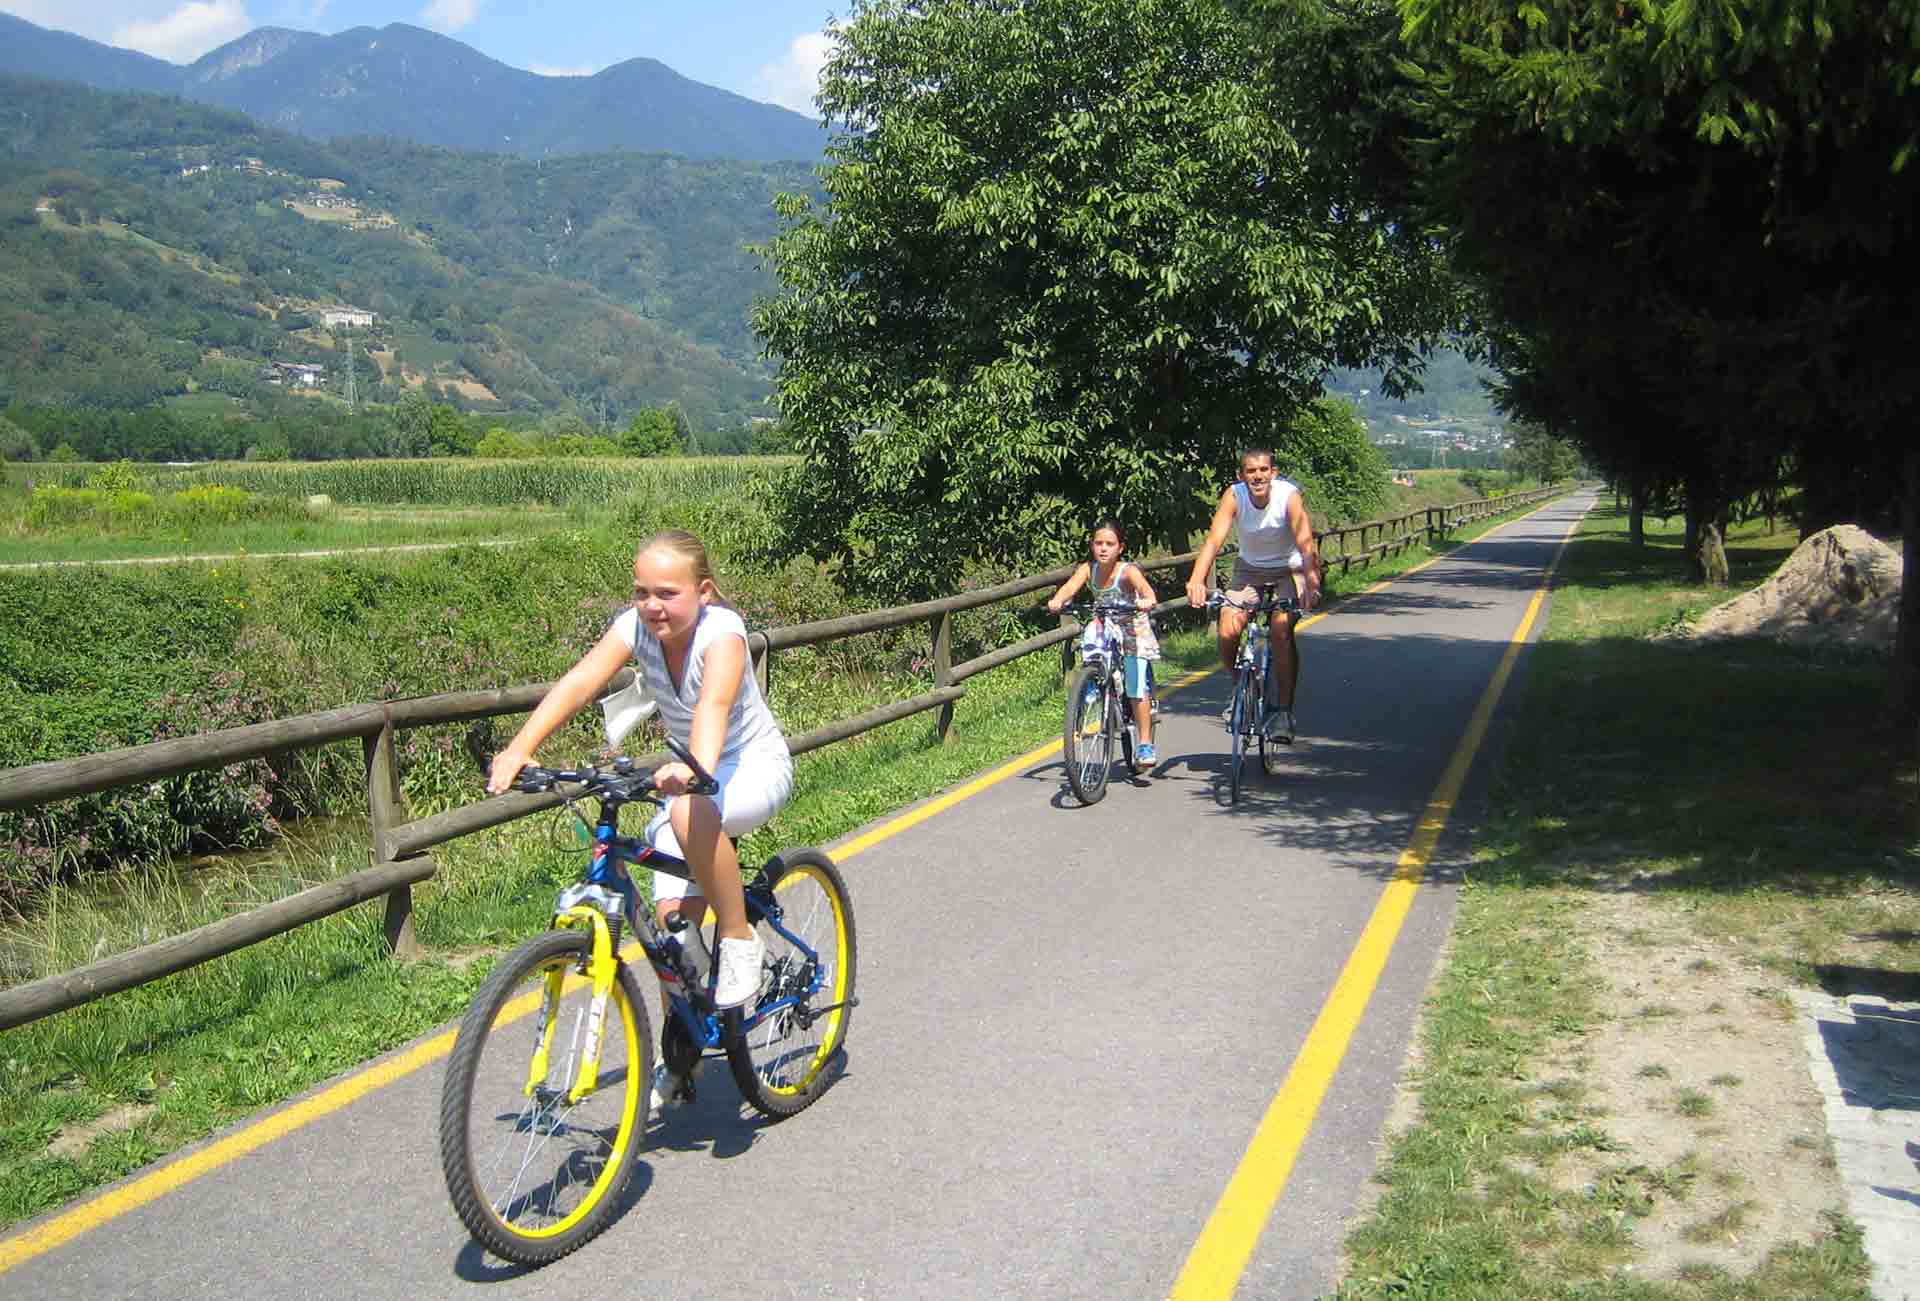 Lake Levico, things to do: cycle paths